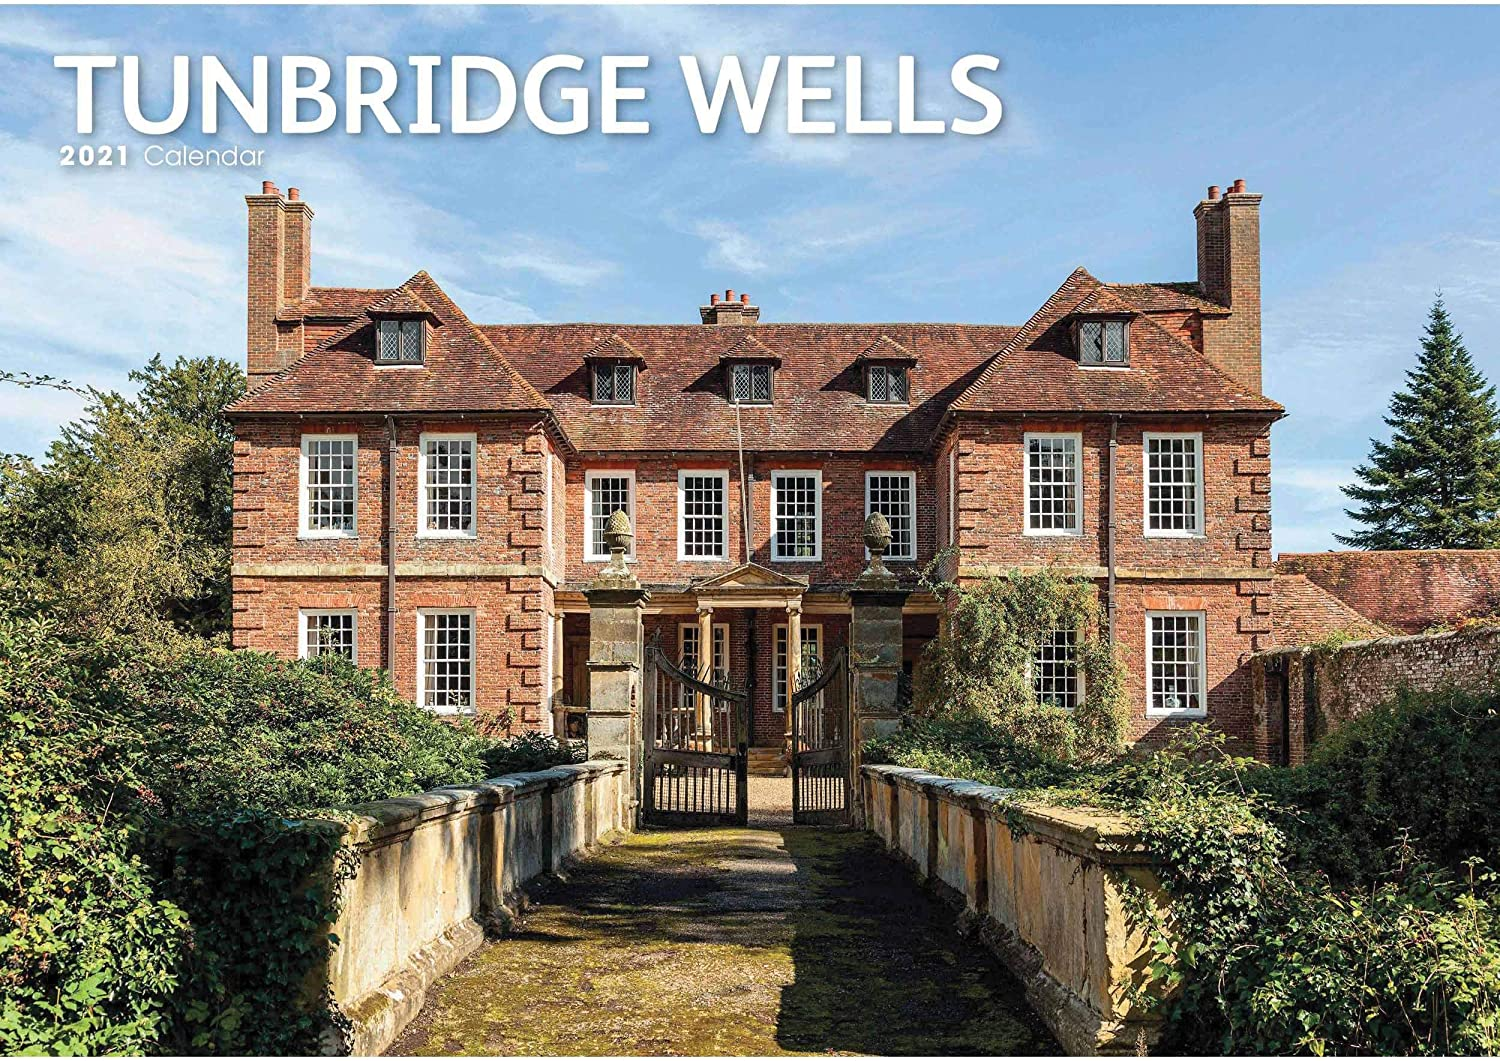 Tunbridge Wells A4 Calendar 2021